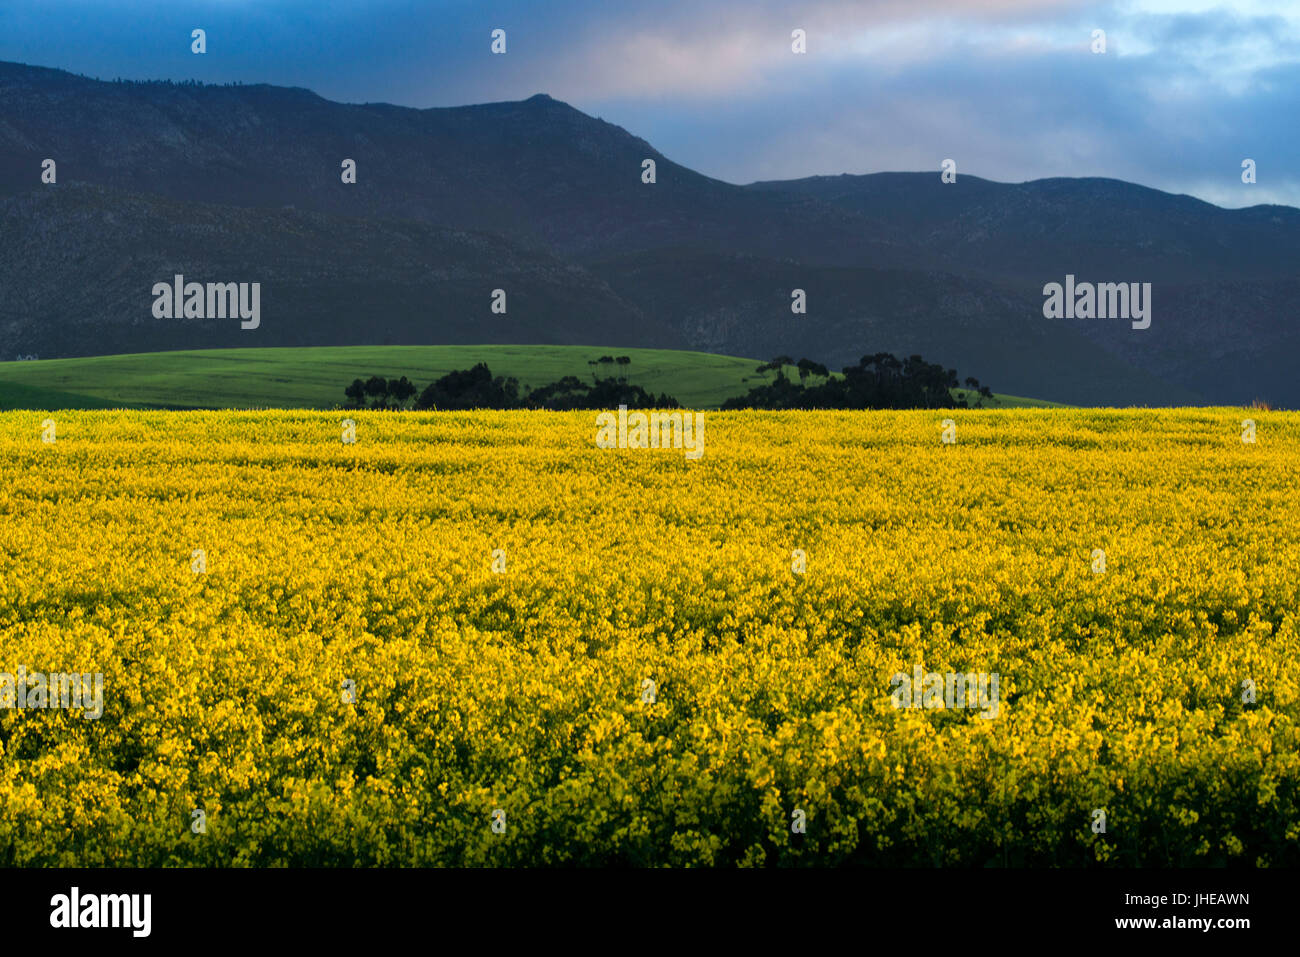 Extensive fields of canola yellow flowers between hermanus and cape extensive fields of canola yellow flowers between hermanus and cape agulhas western cape south africa mightylinksfo